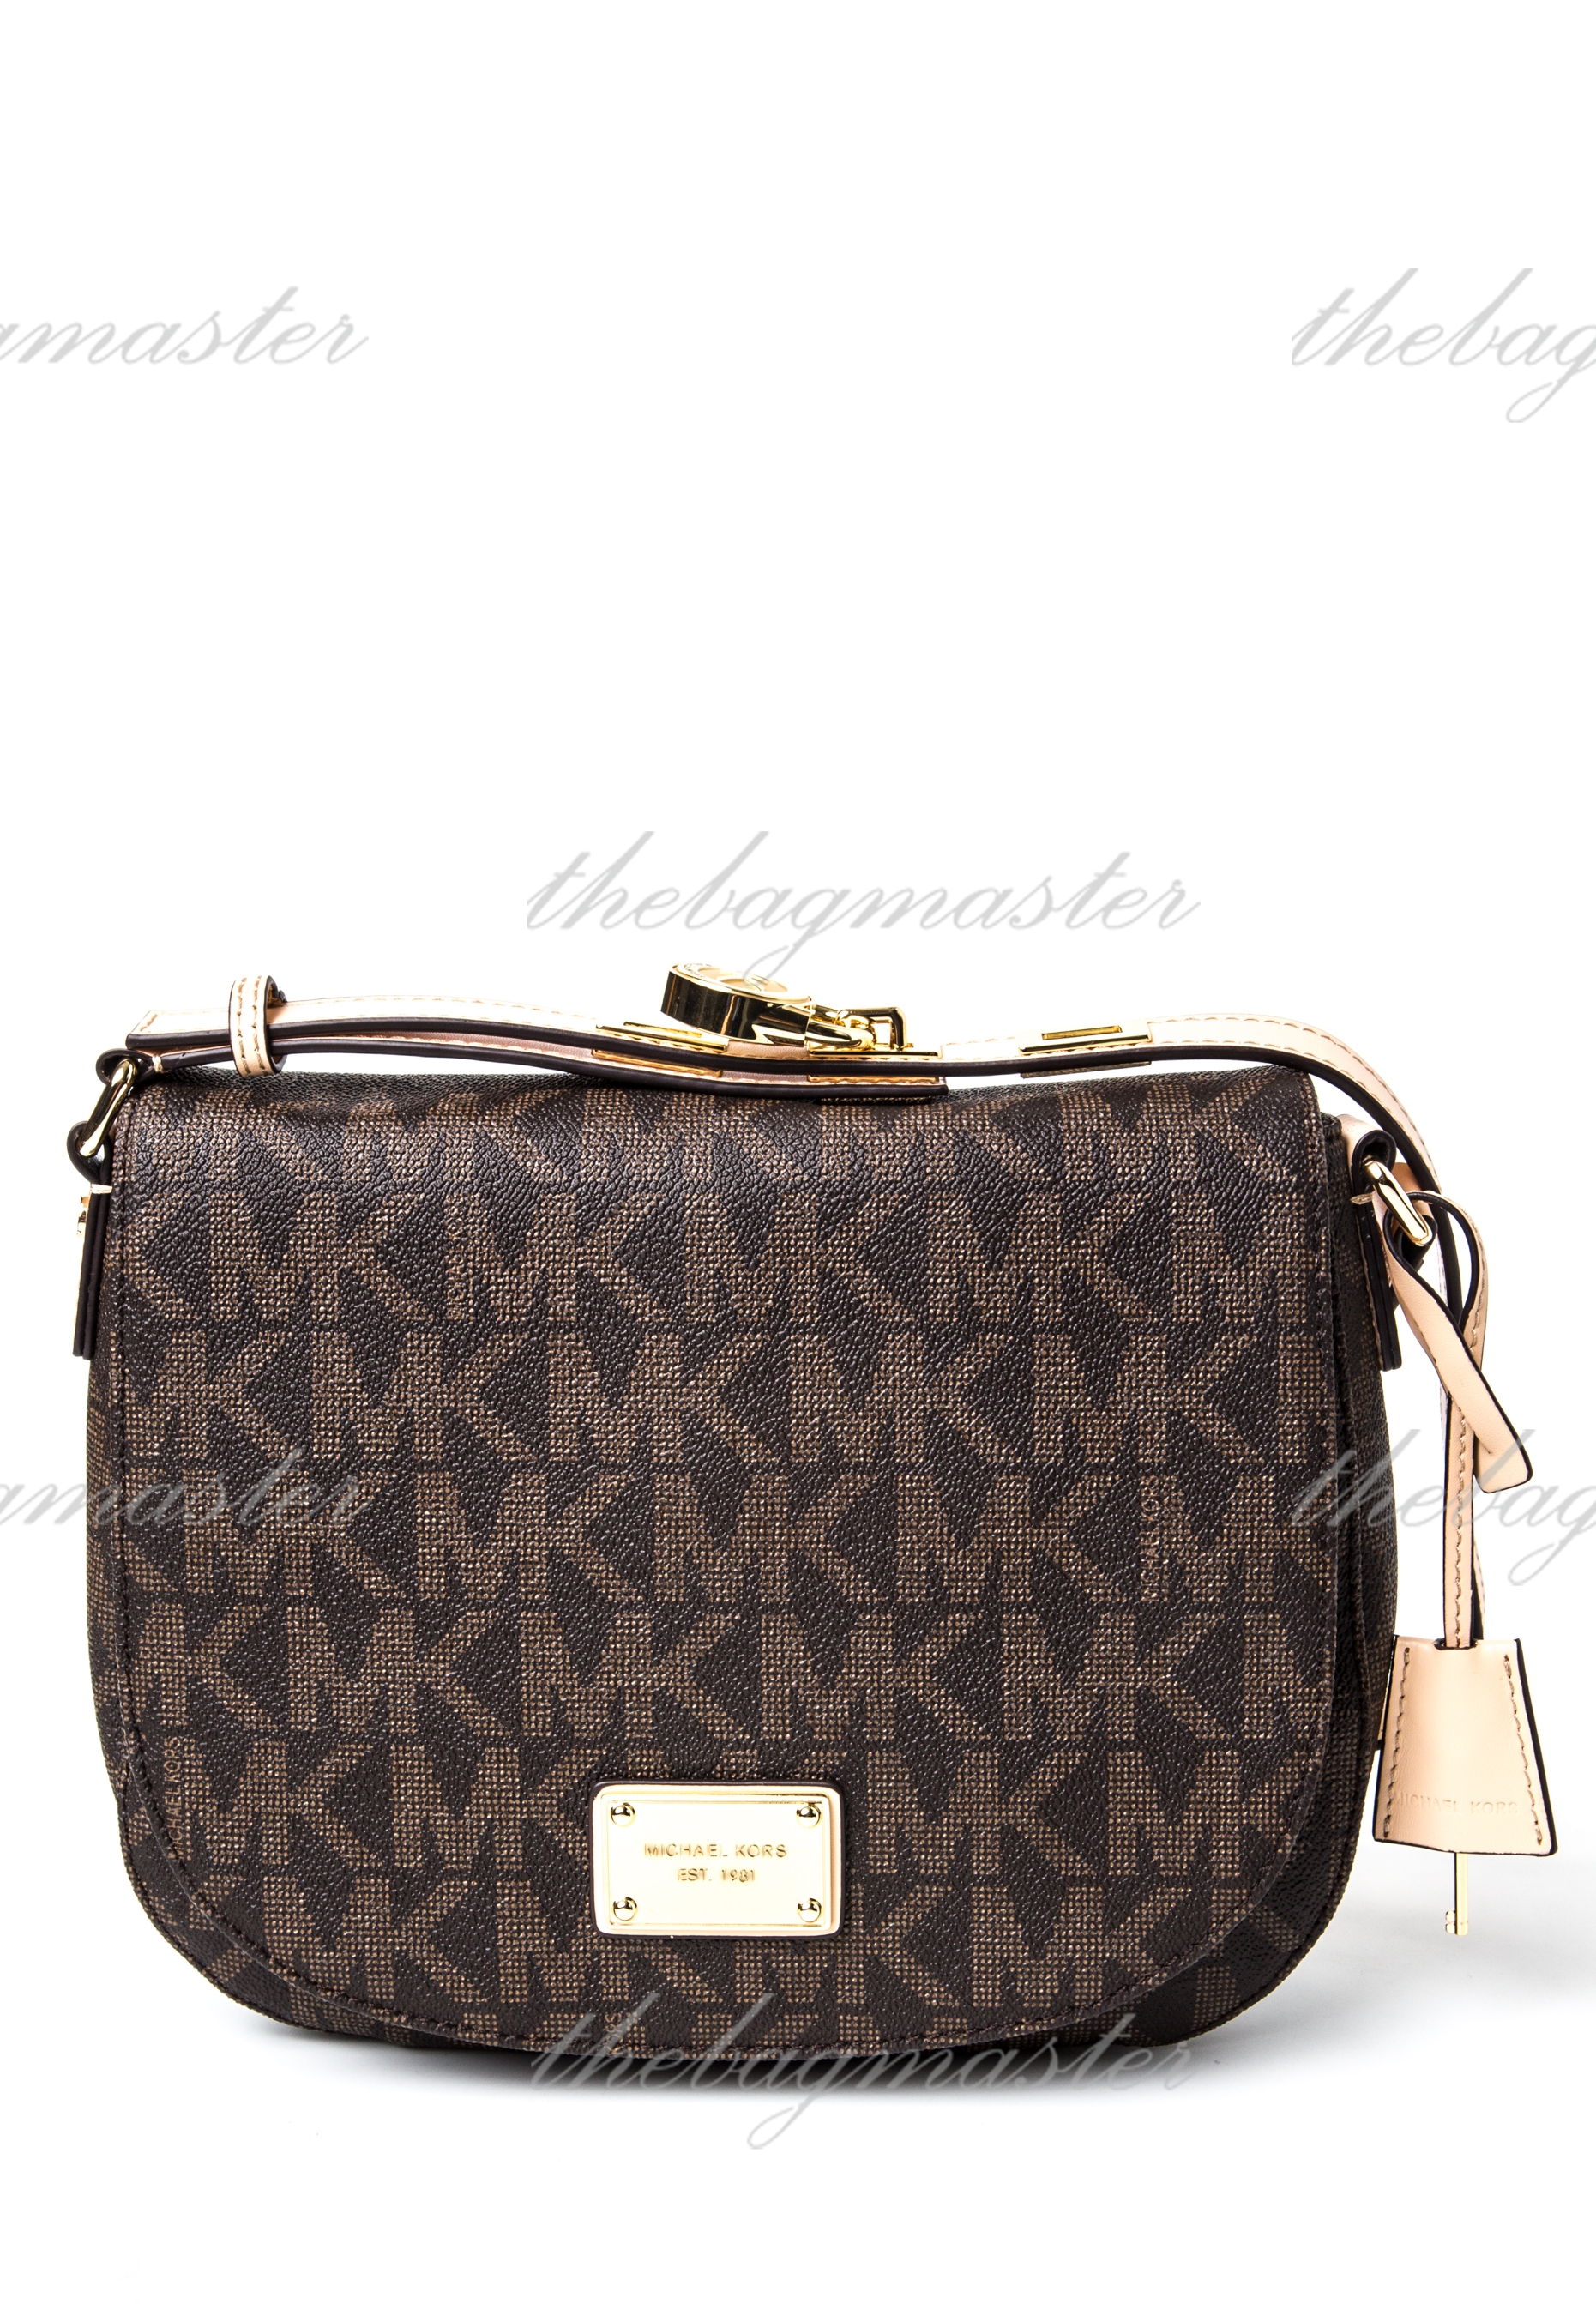 15dd05bdb6b0 Michael Kors Hamilton MK Signature PVC Messenger Crossbody Bag – Luggage  Brown